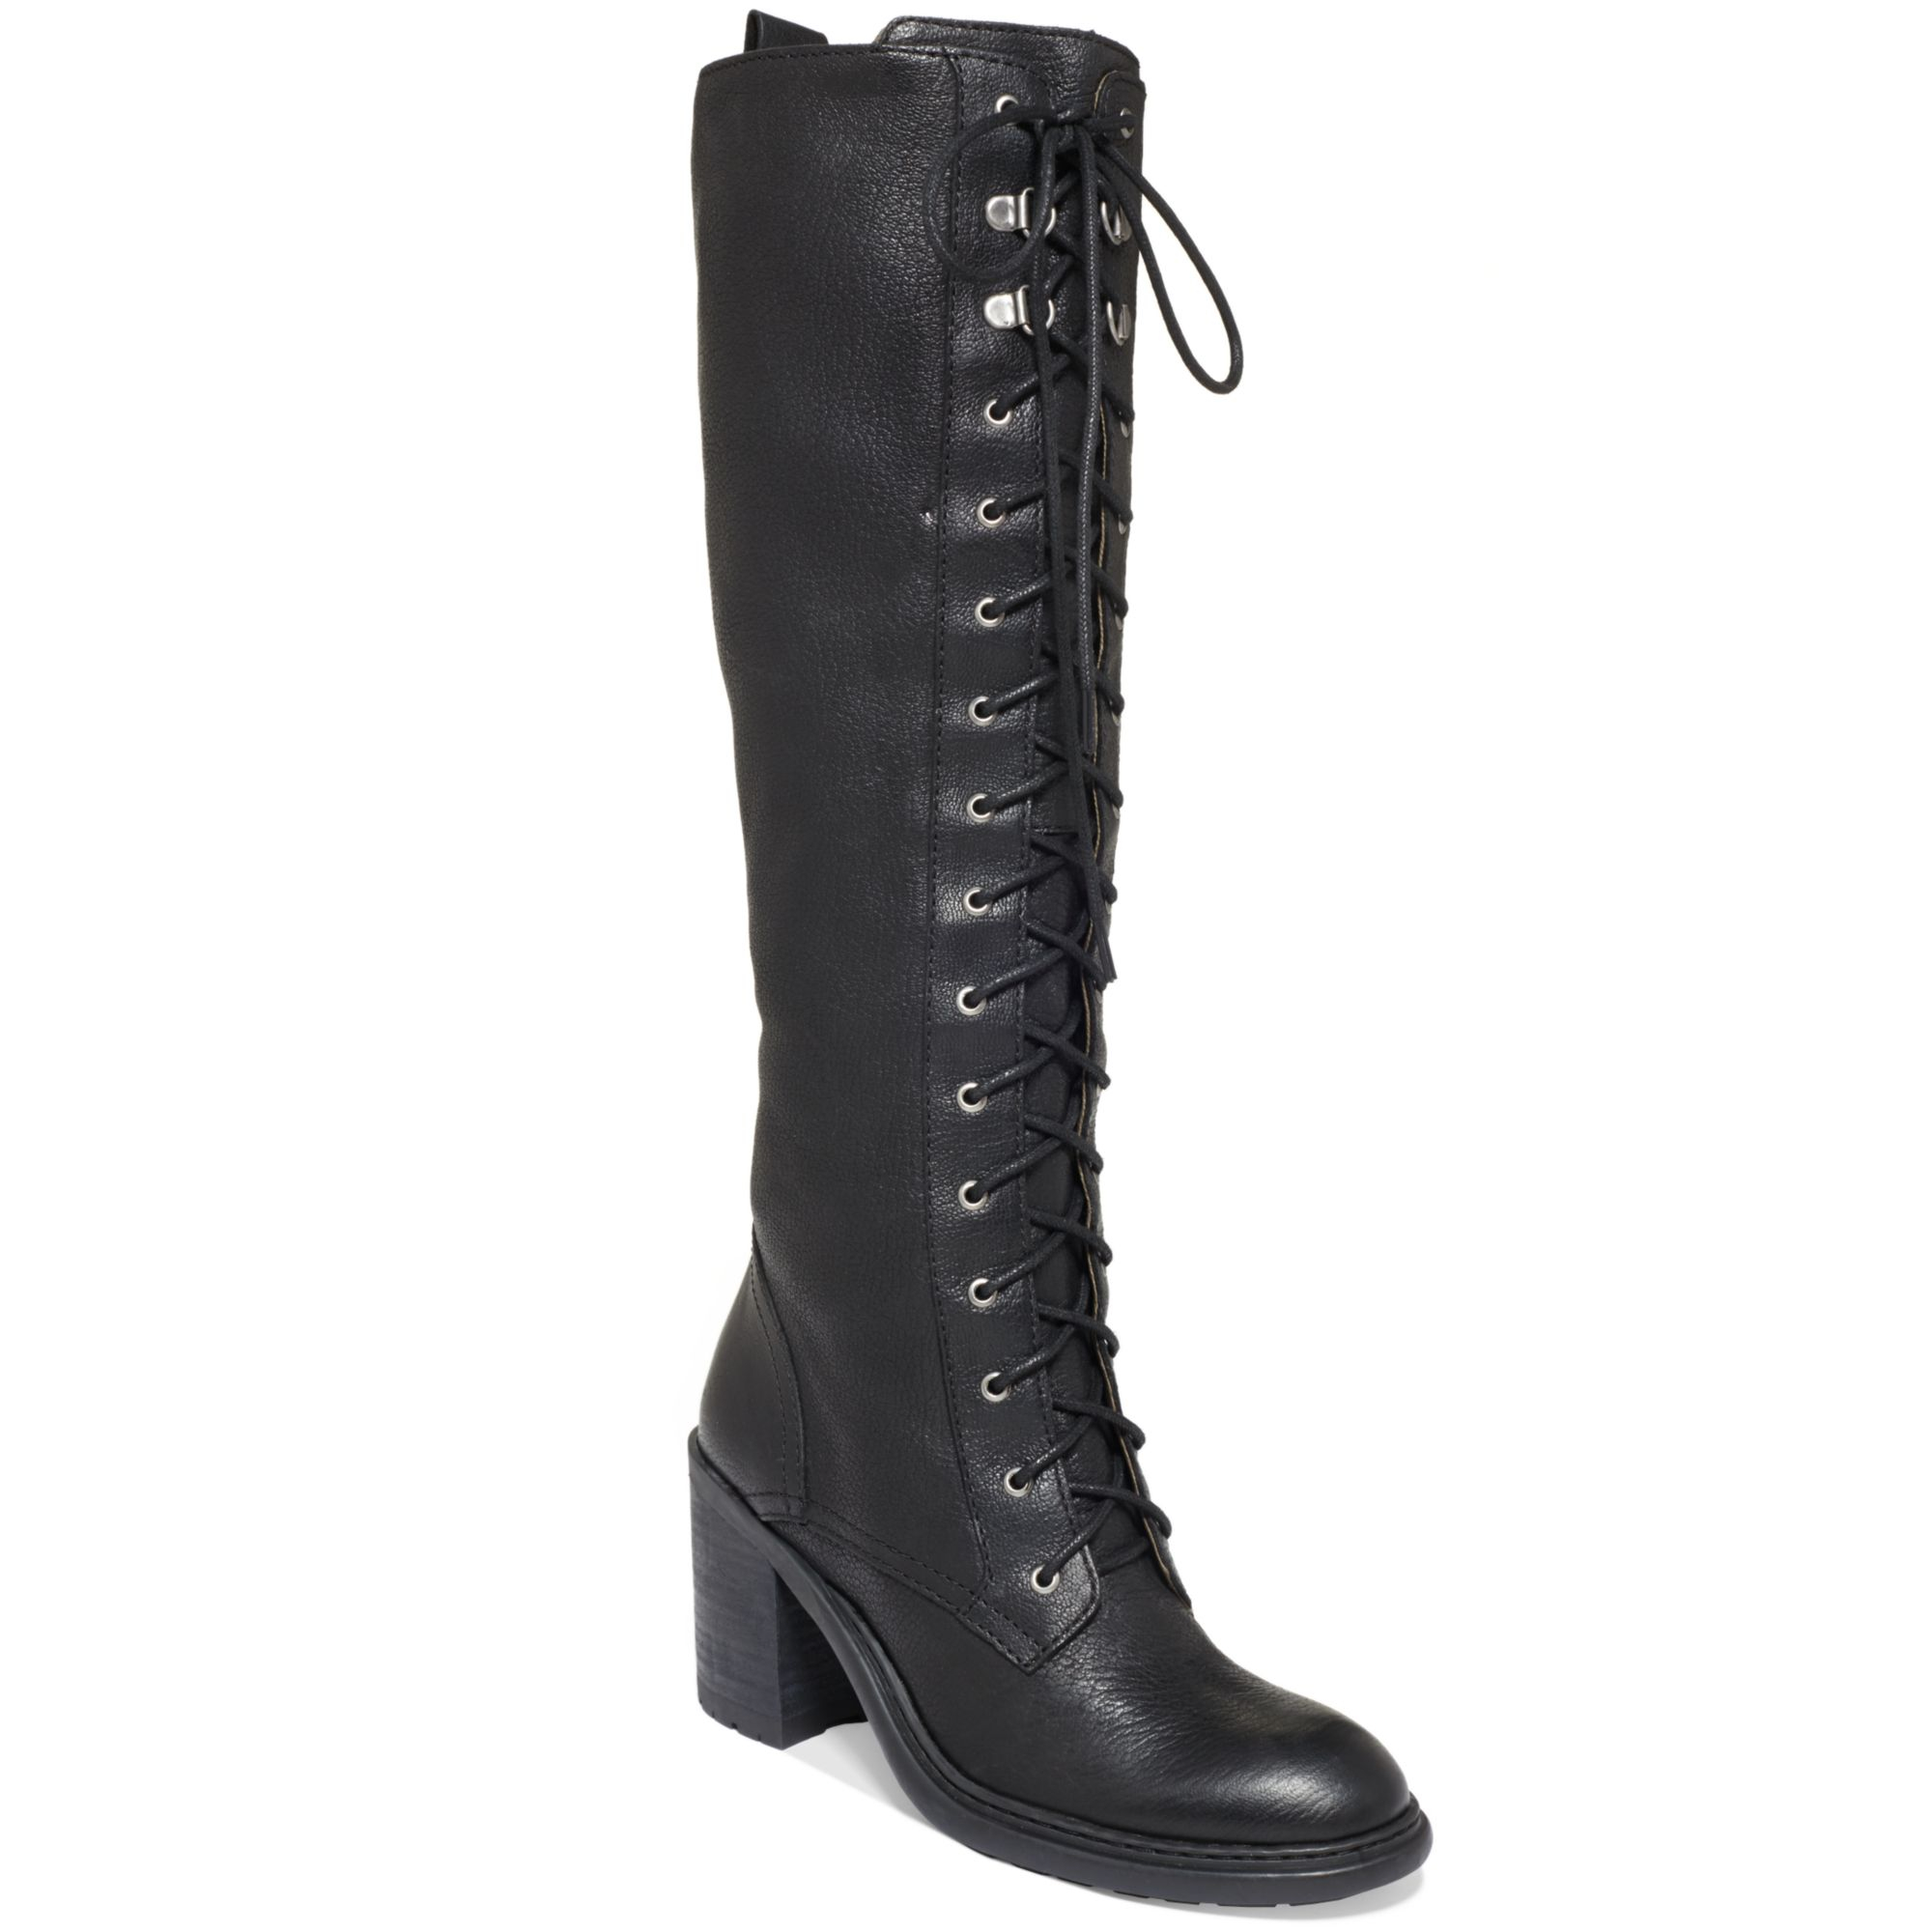 e5c84f2f62101 Nine West Lory Tall Laceup Combat Boots in Black - Lyst